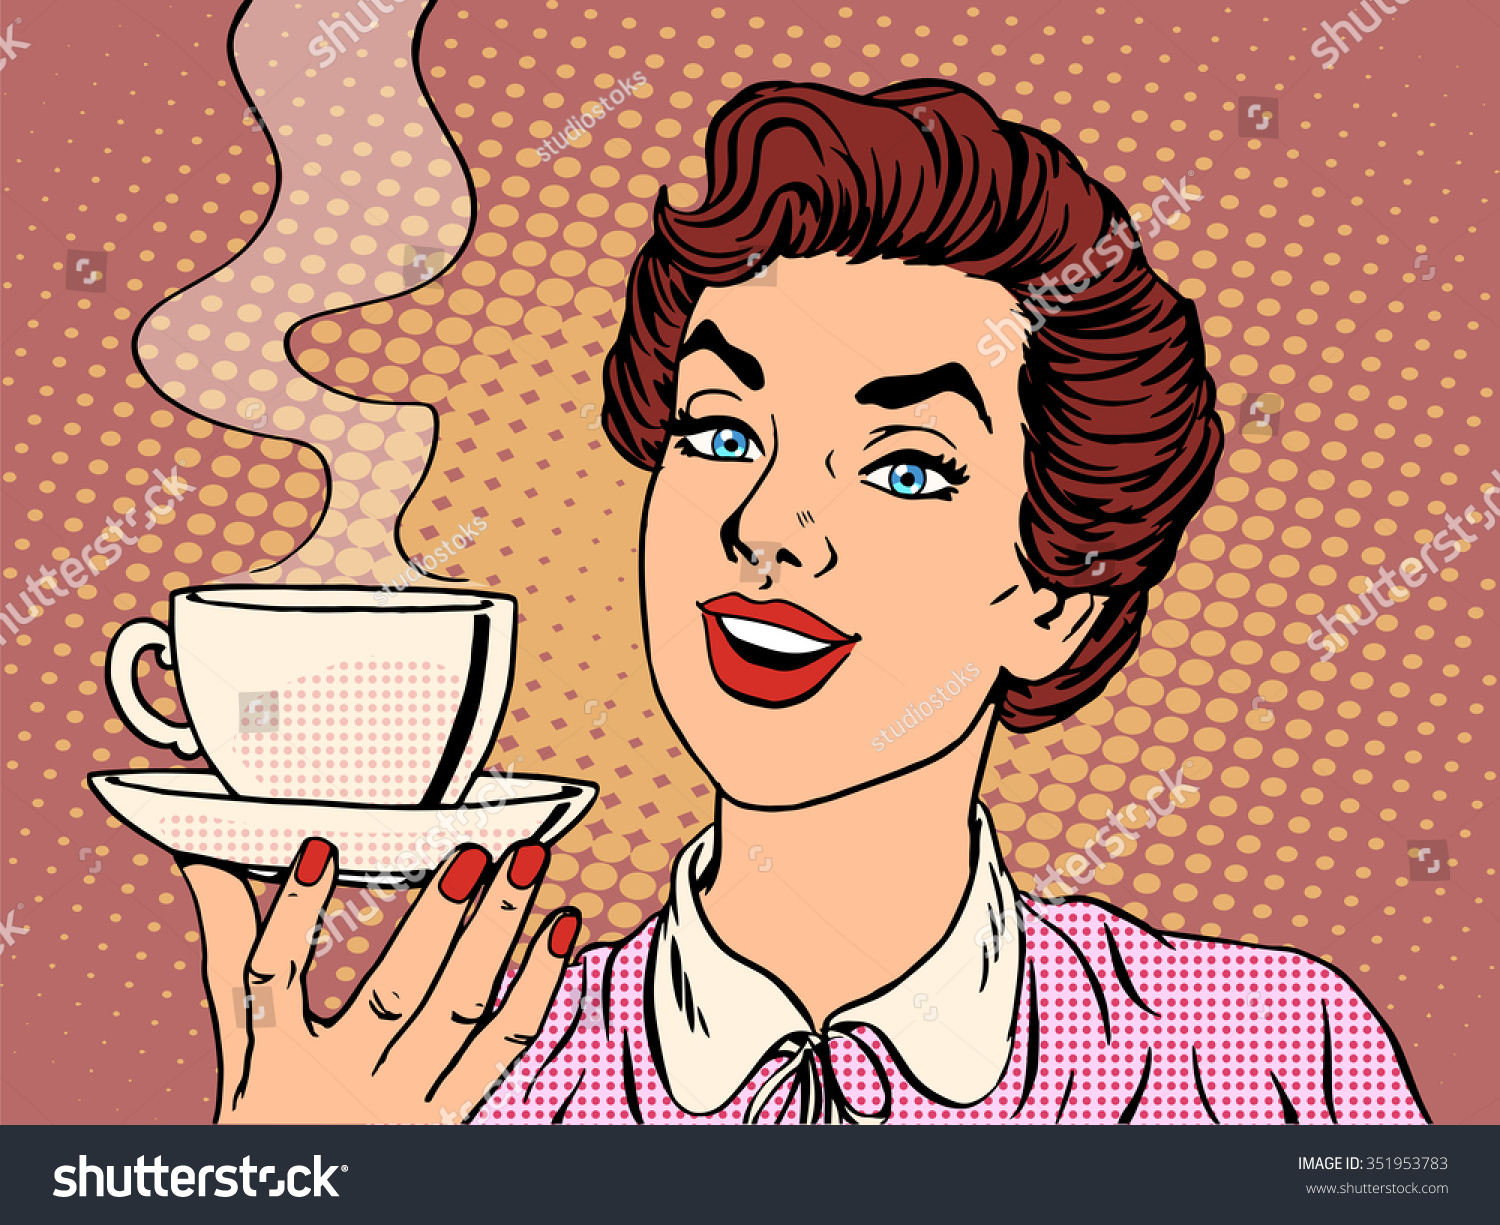 Study About People That Drink Sweet Coffee